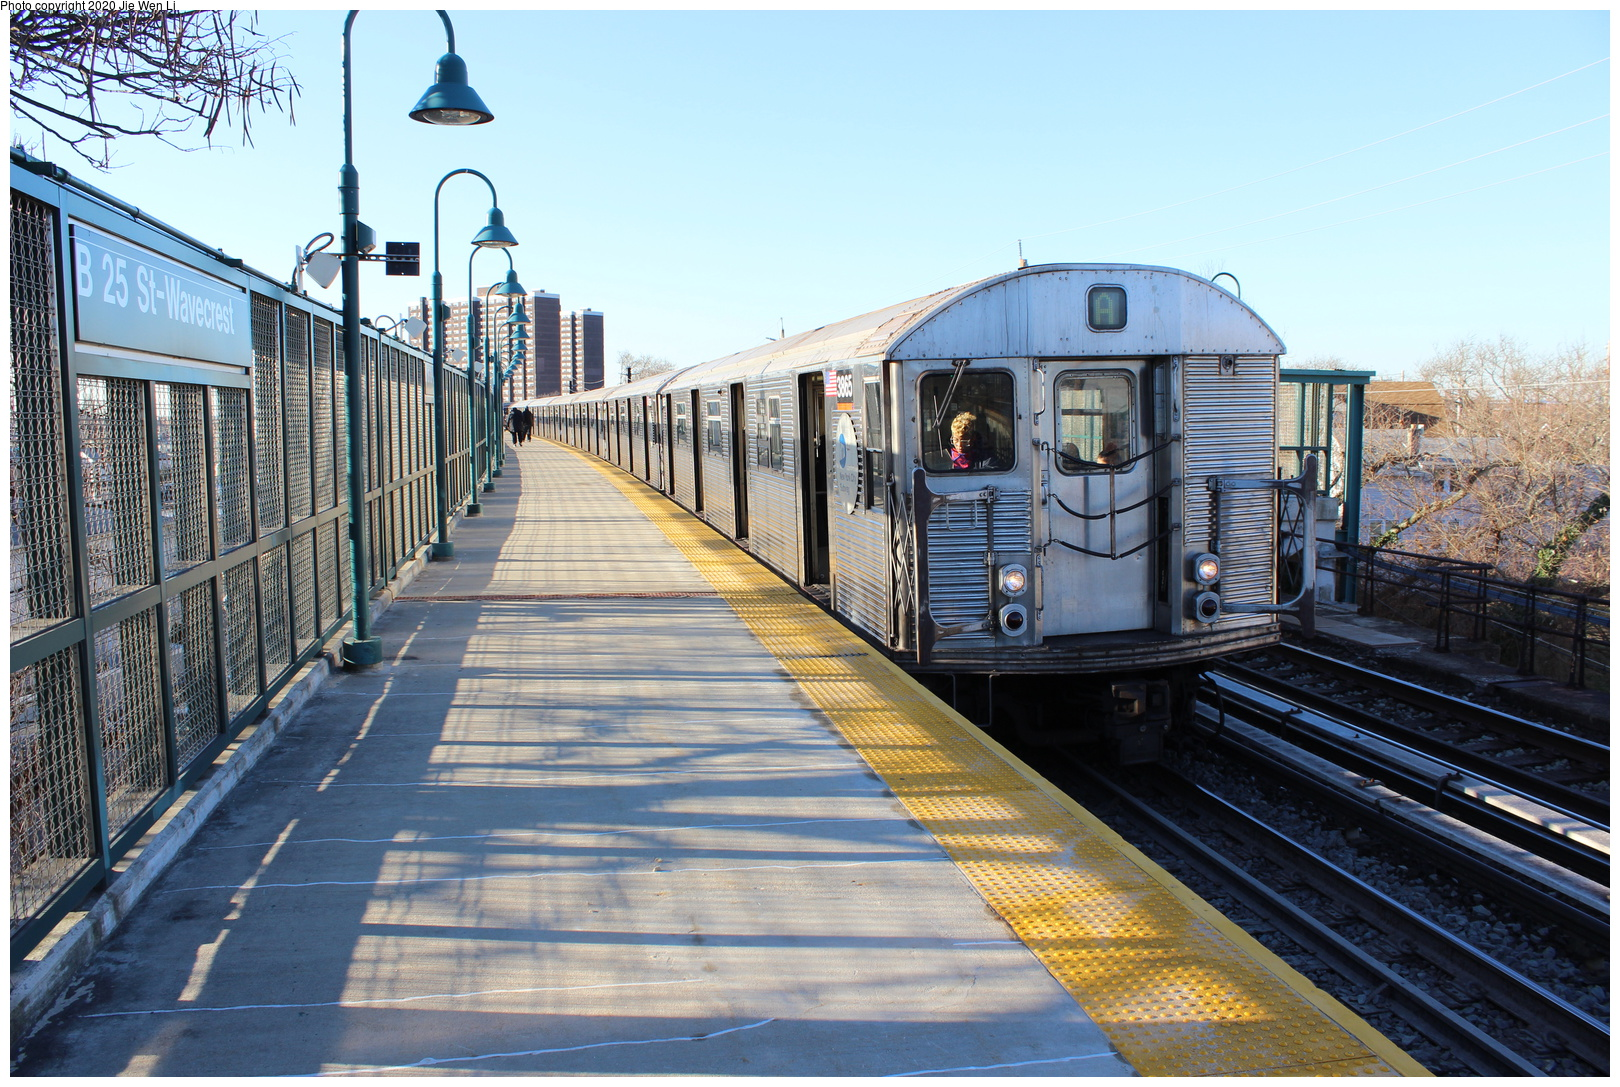 (226k, 1044x961)<br><b>Country:</b> United States<br><b>City:</b> New York<br><b>System:</b> New York City Transit<br><b>Line:</b> IND Fulton Street Line<br><b>Location:</b> 111th Street/Greenwood Avenue <br><b>Car:</b> BMT C  <br><b>Photo by:</b> Joel Shanus<br><b>Viewed (this week/total):</b> 2 / 1904